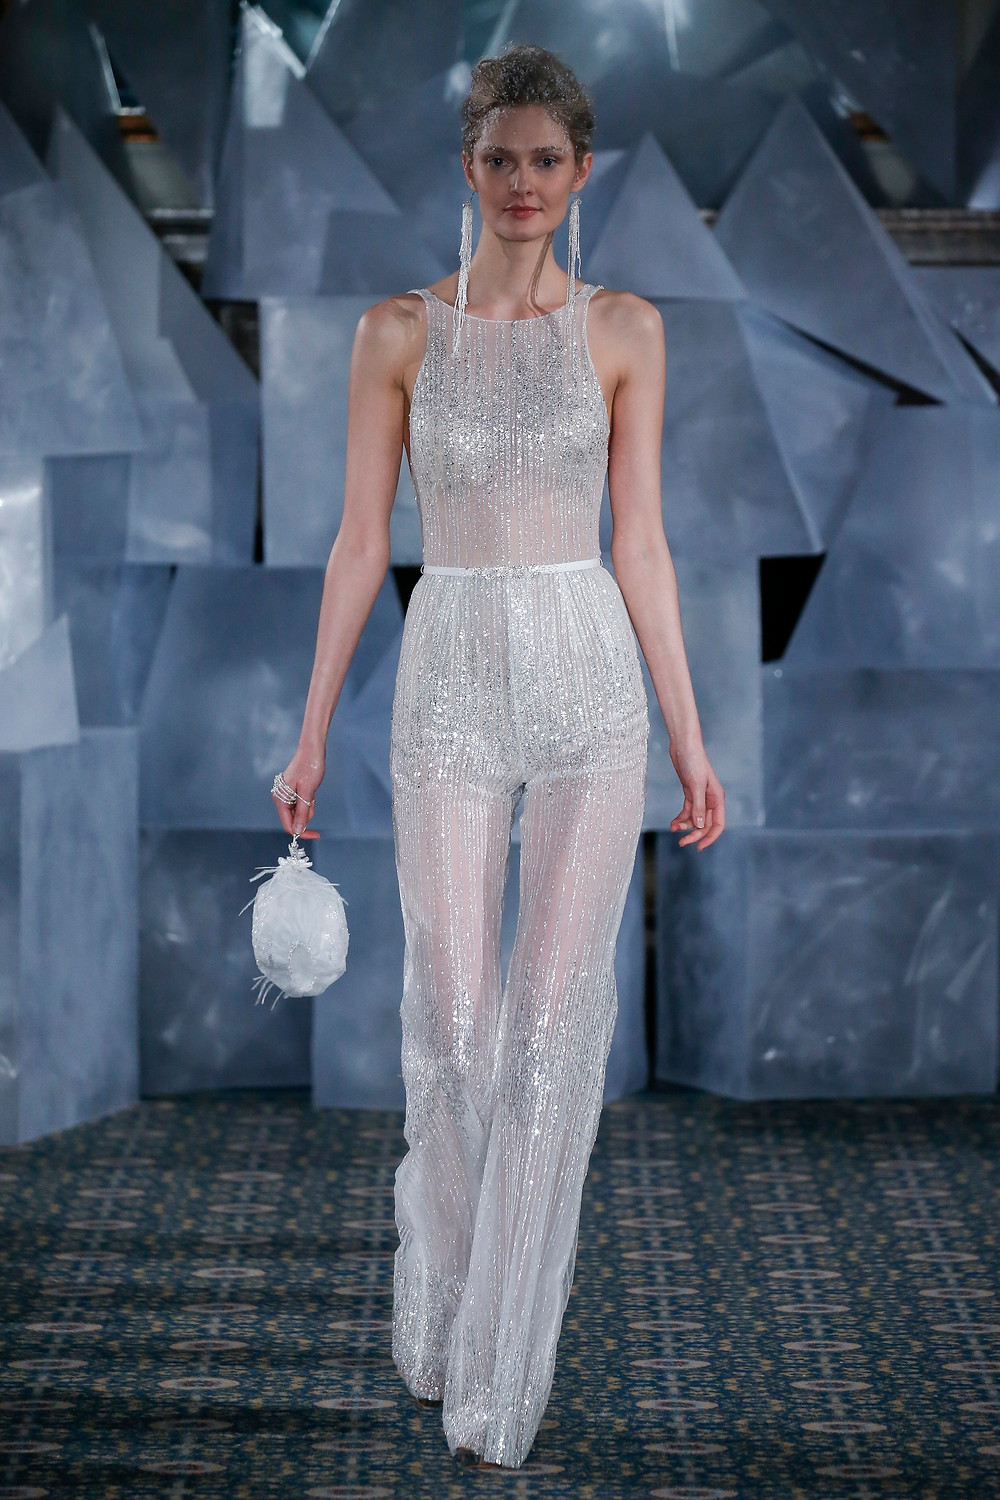 A Mira Zwillinger sparkly wedding jumpsuit or pantsuit